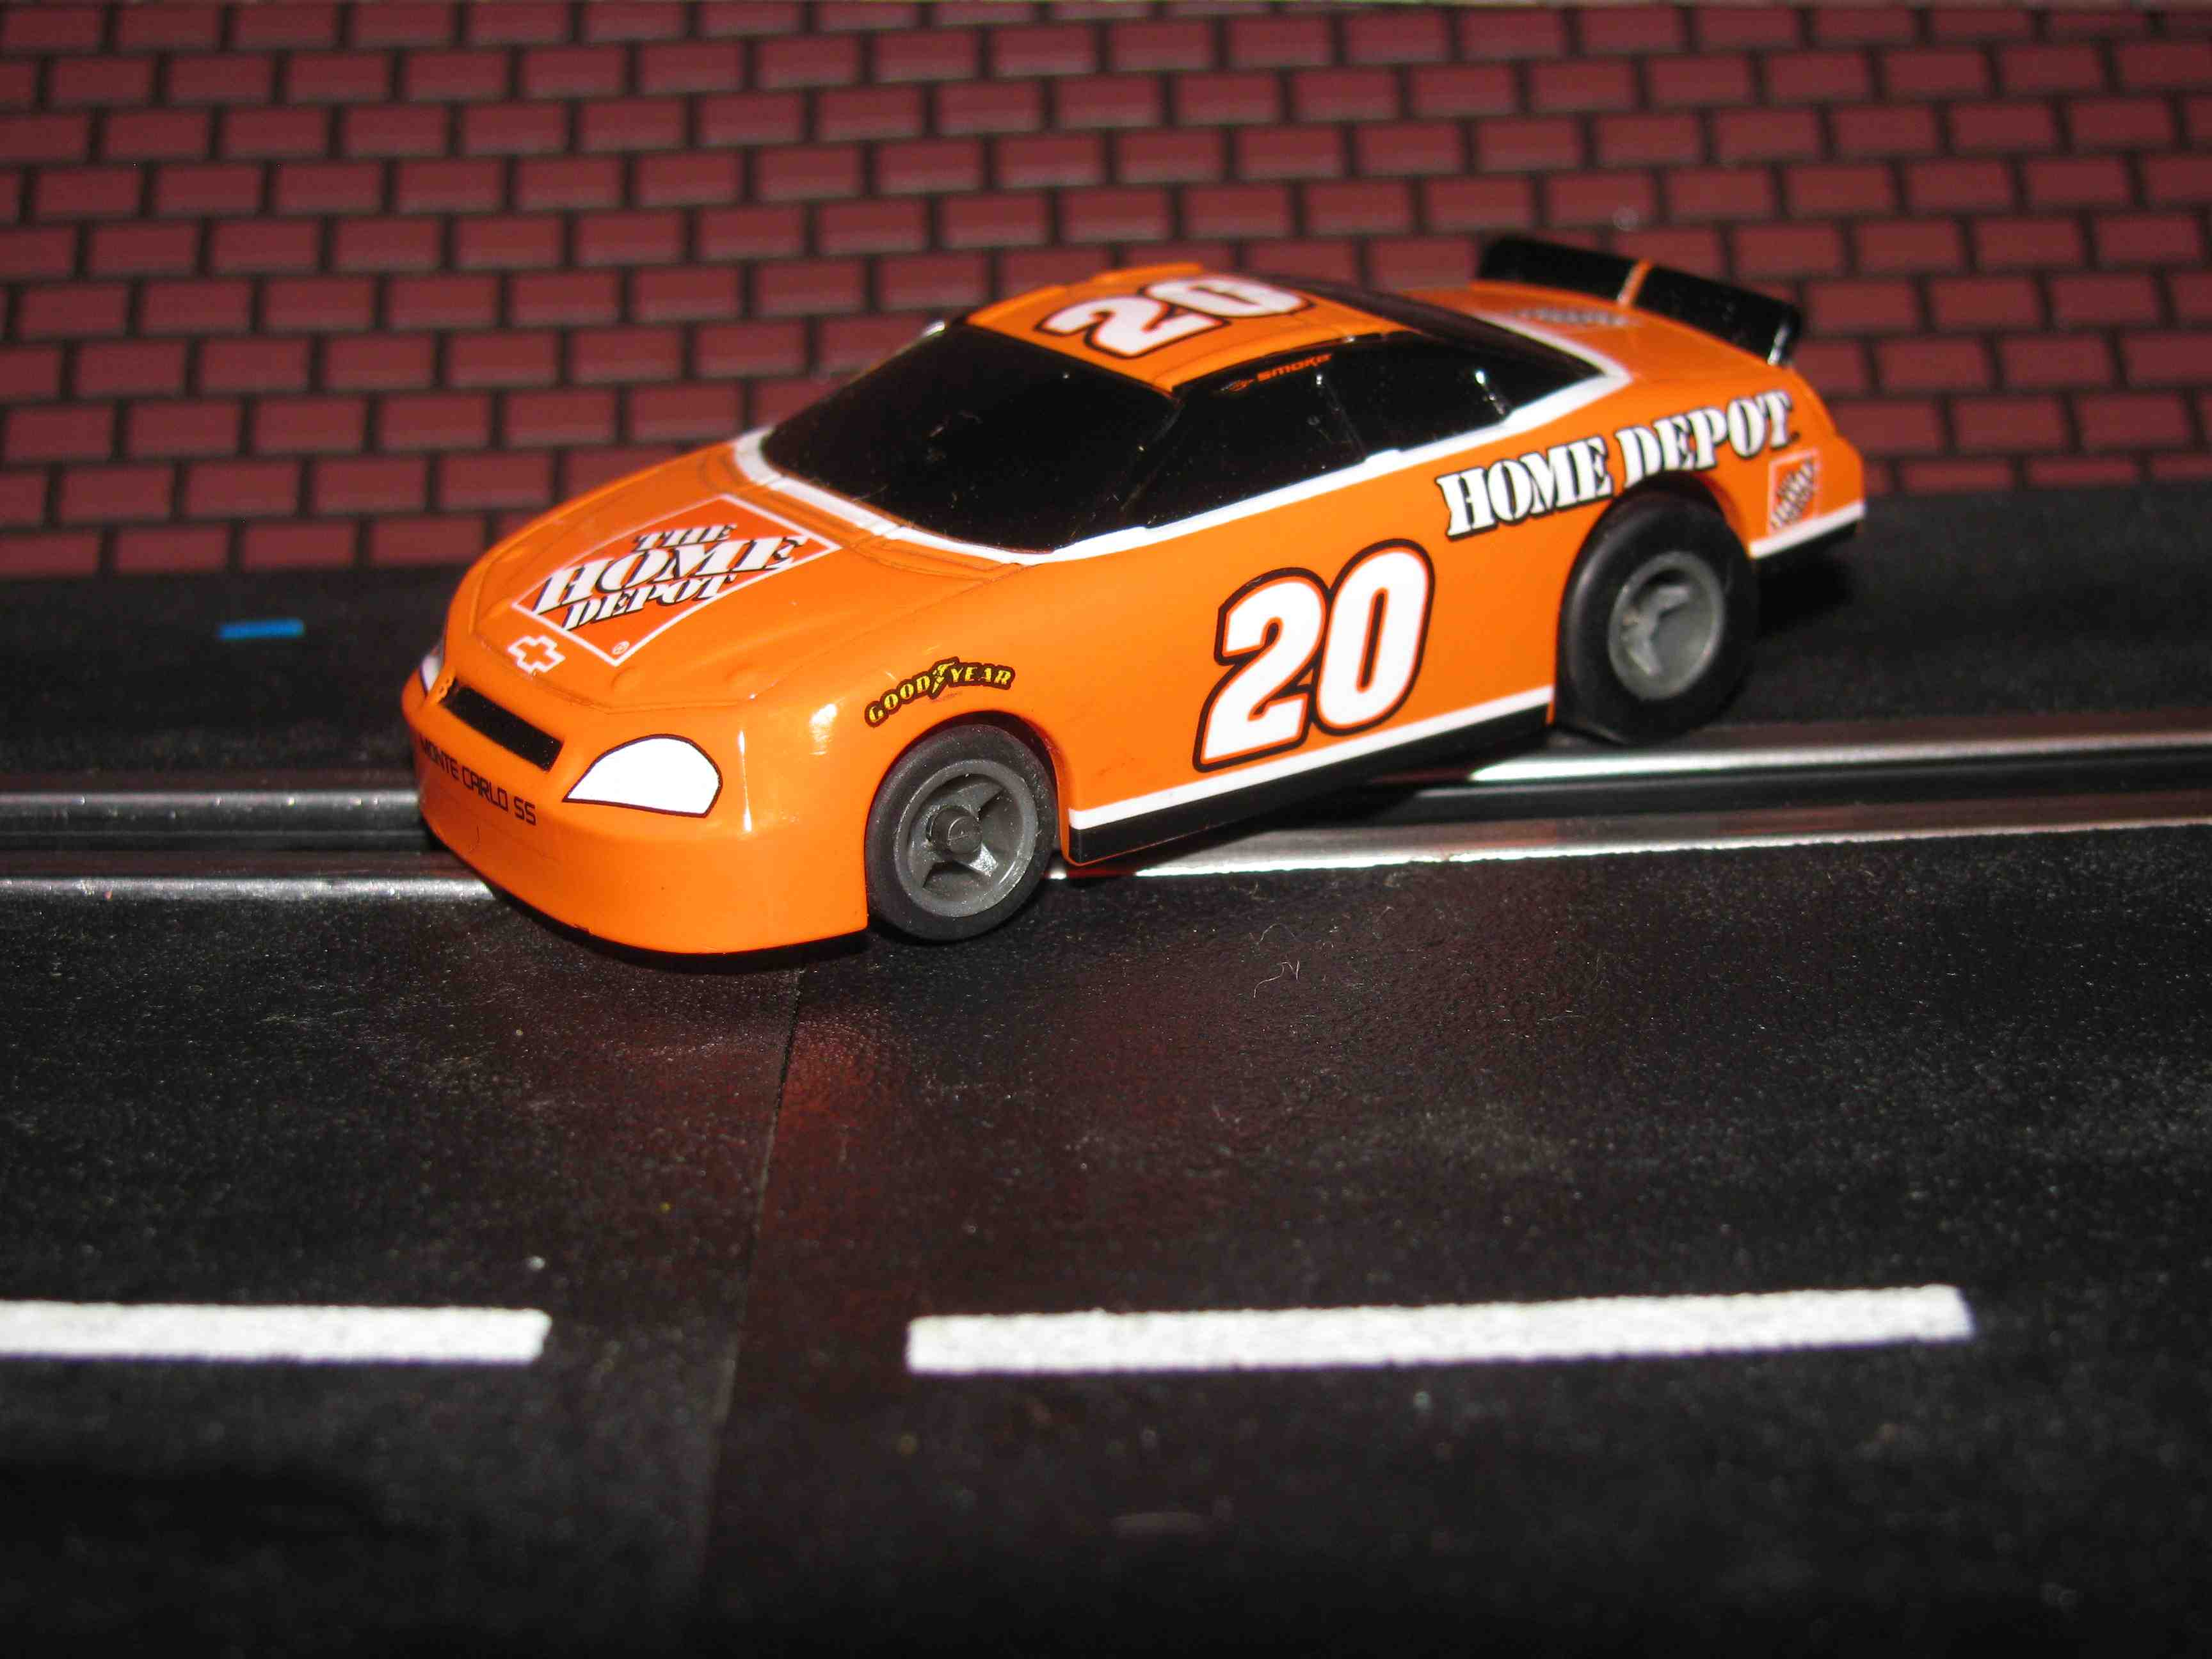 * SOLD * Tyco Like-Like HO Slot Car #20 Monte Carlo SS (Home Depot) with Guide Post